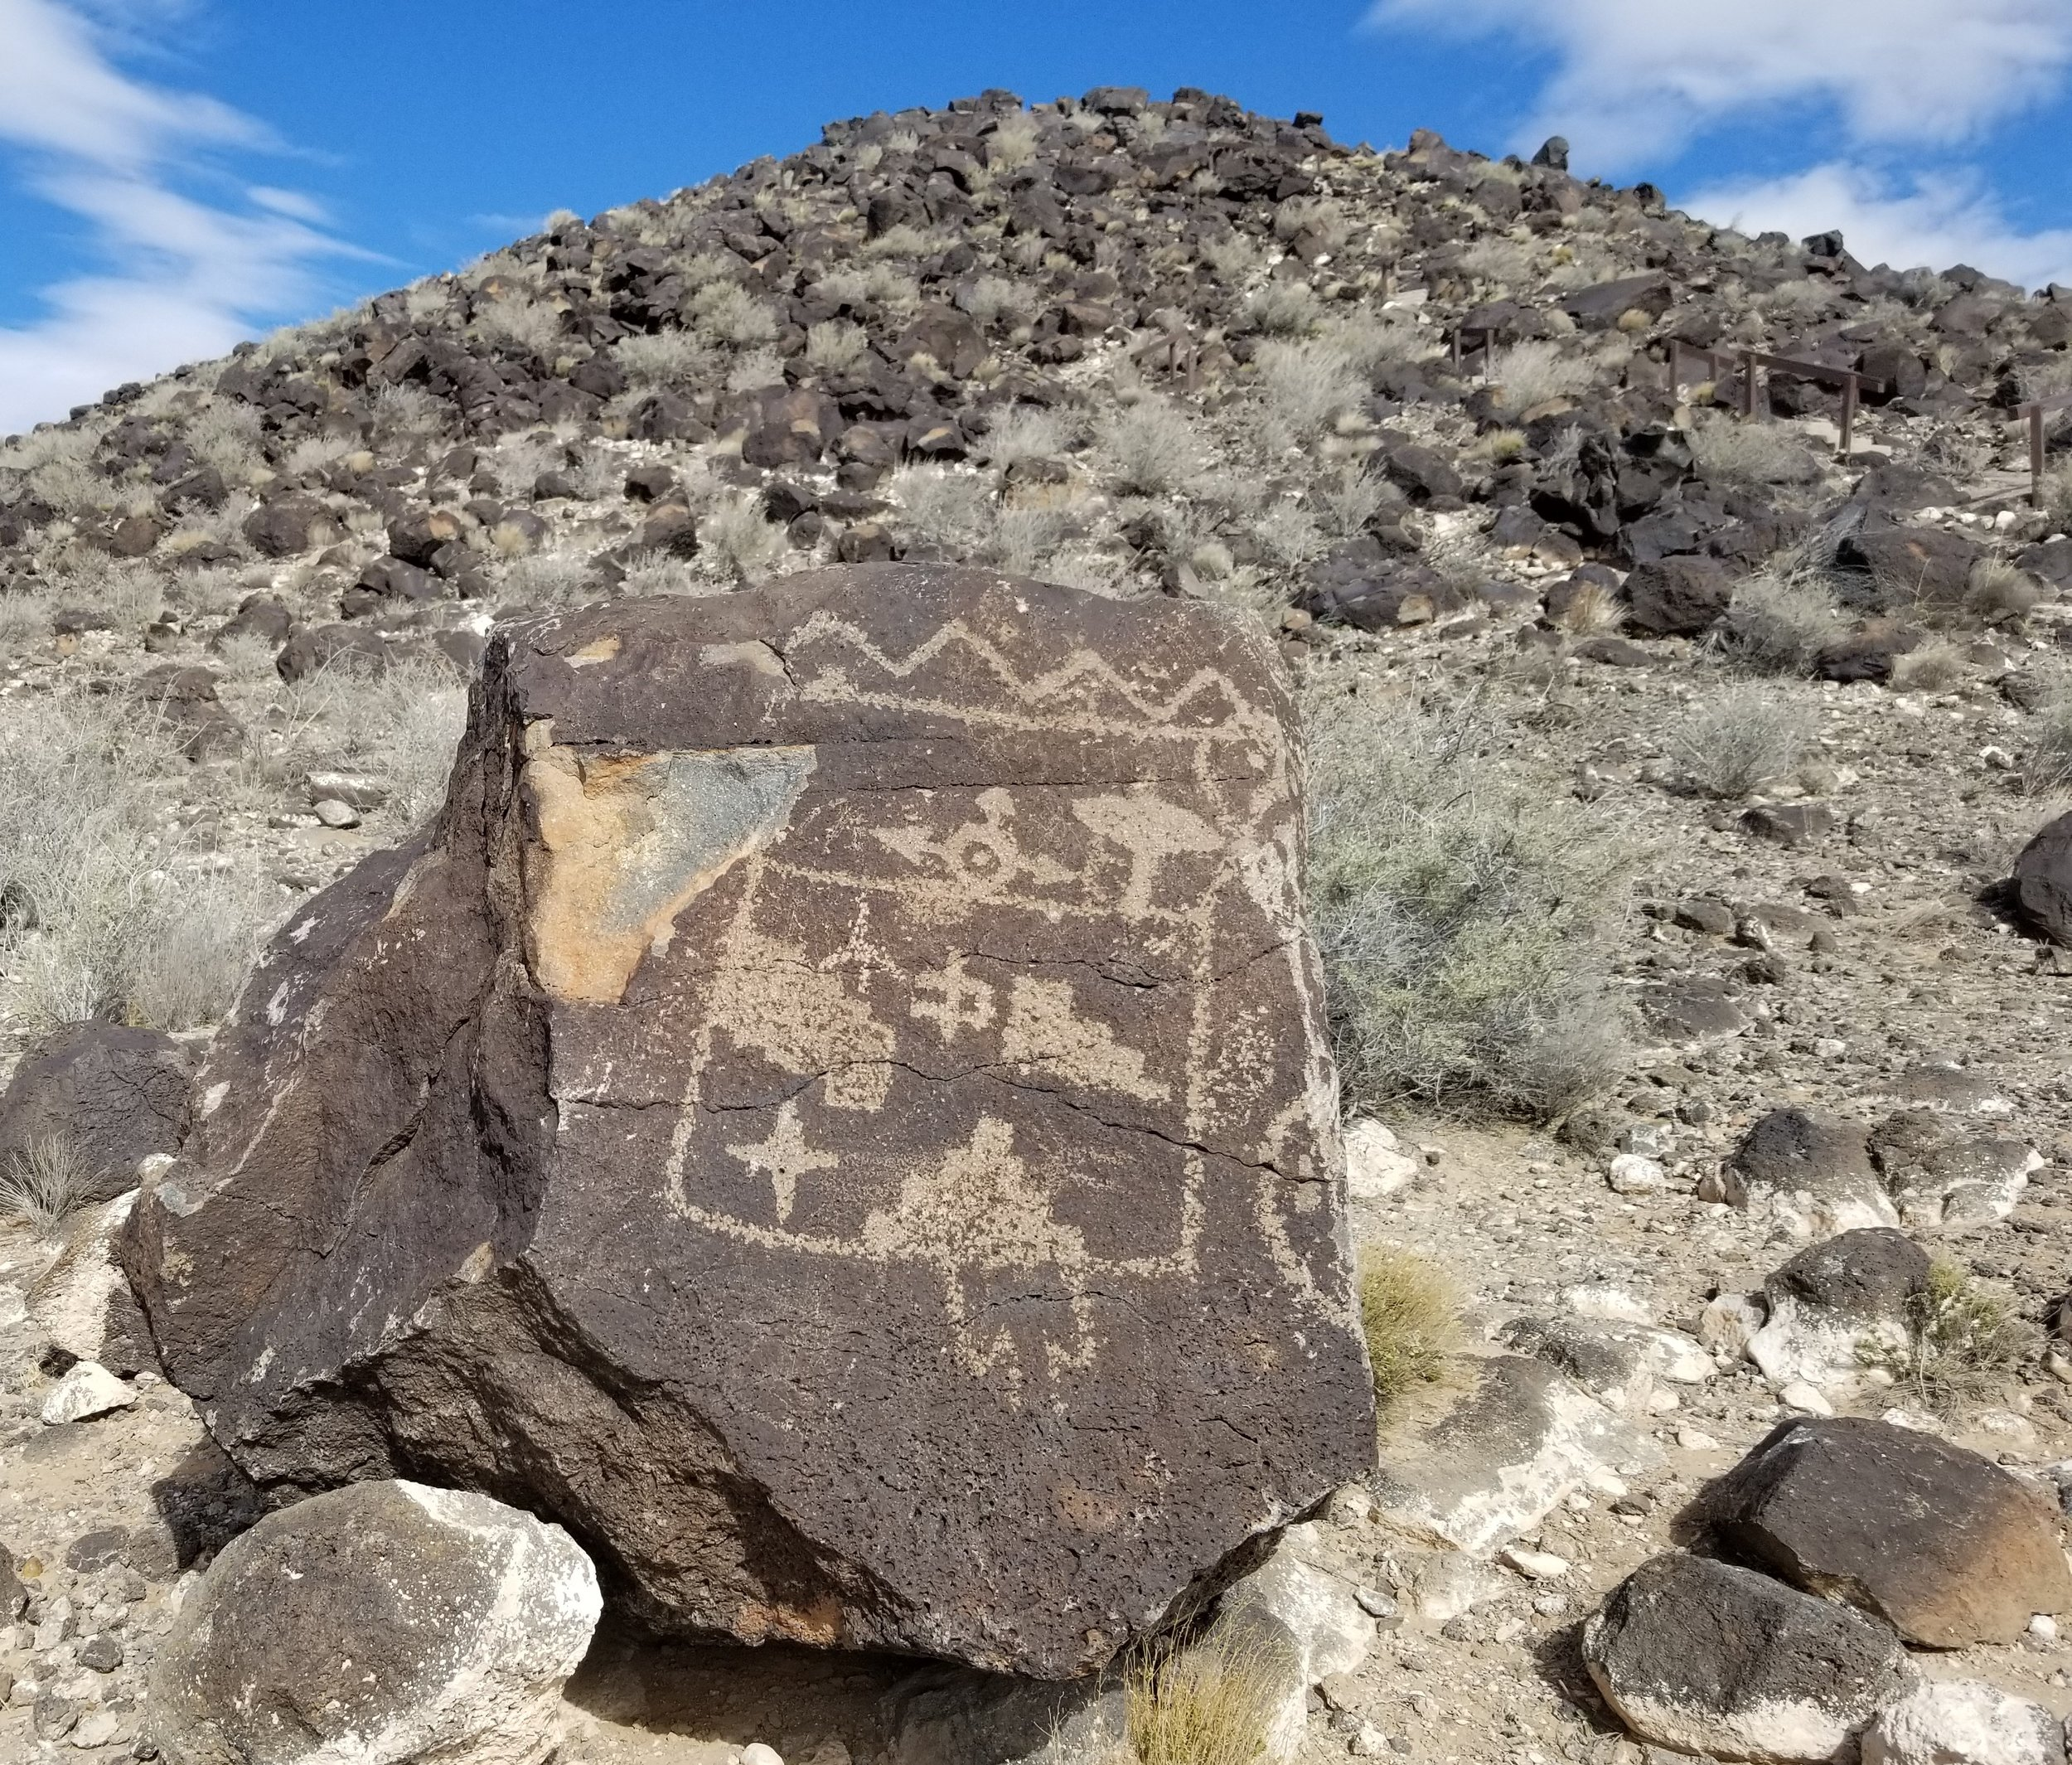 """Boca Negra Canyon, which according to the sign on the hiking trail """"is considered the birthplace of Petroglyph Monument."""""""